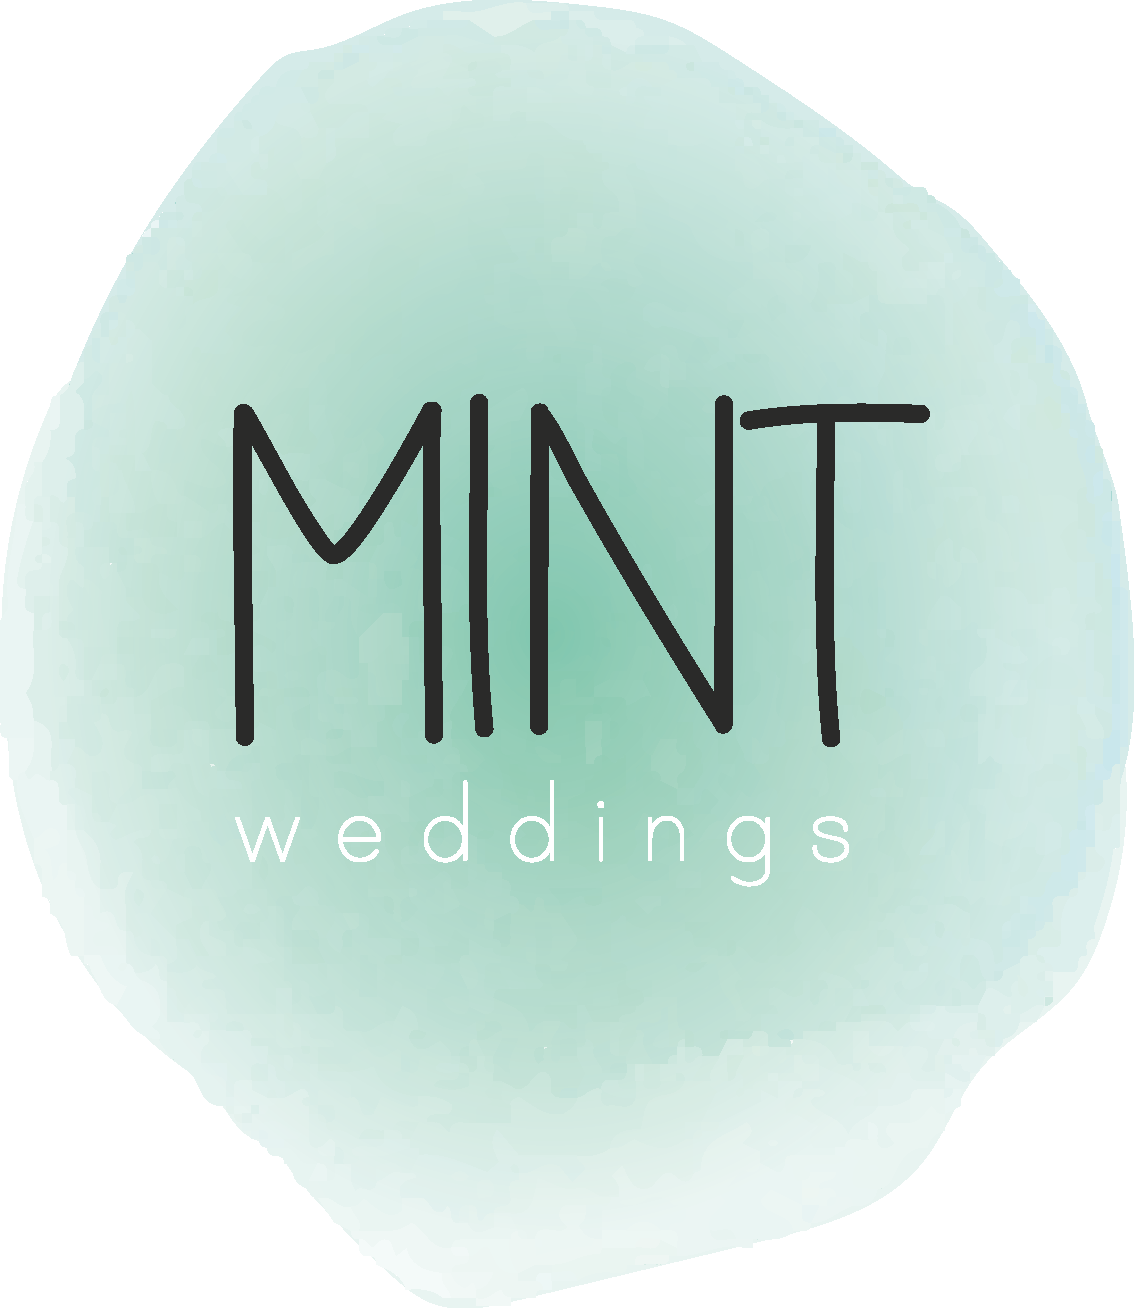 MINT weddings